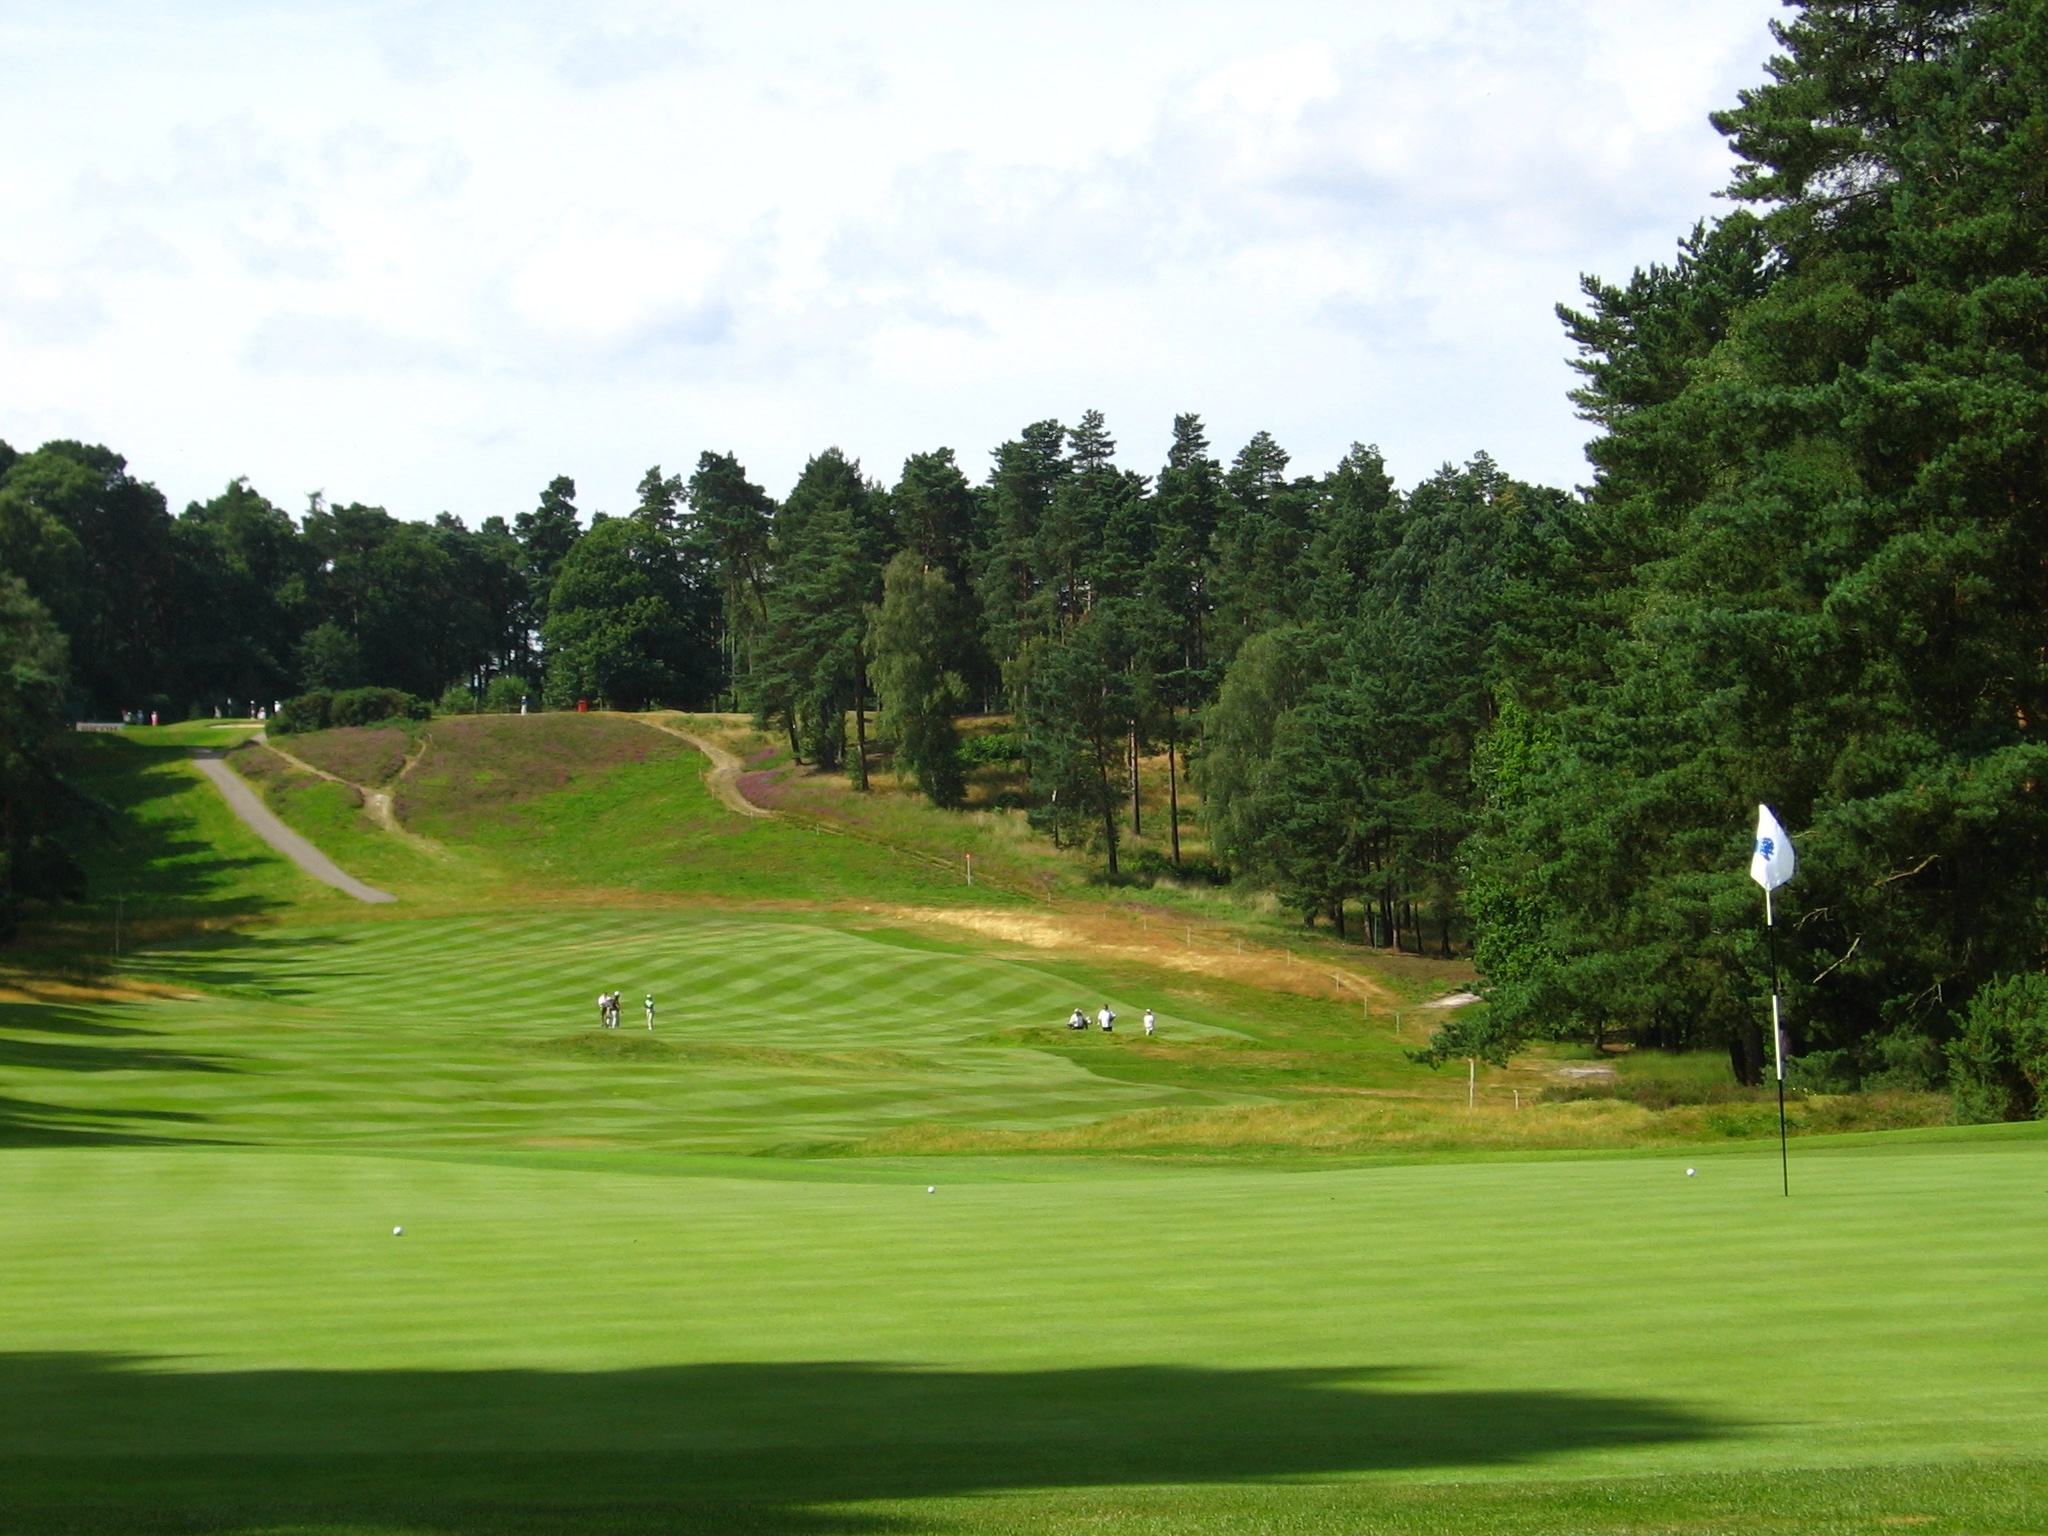 The New course at Sunningdale golf club